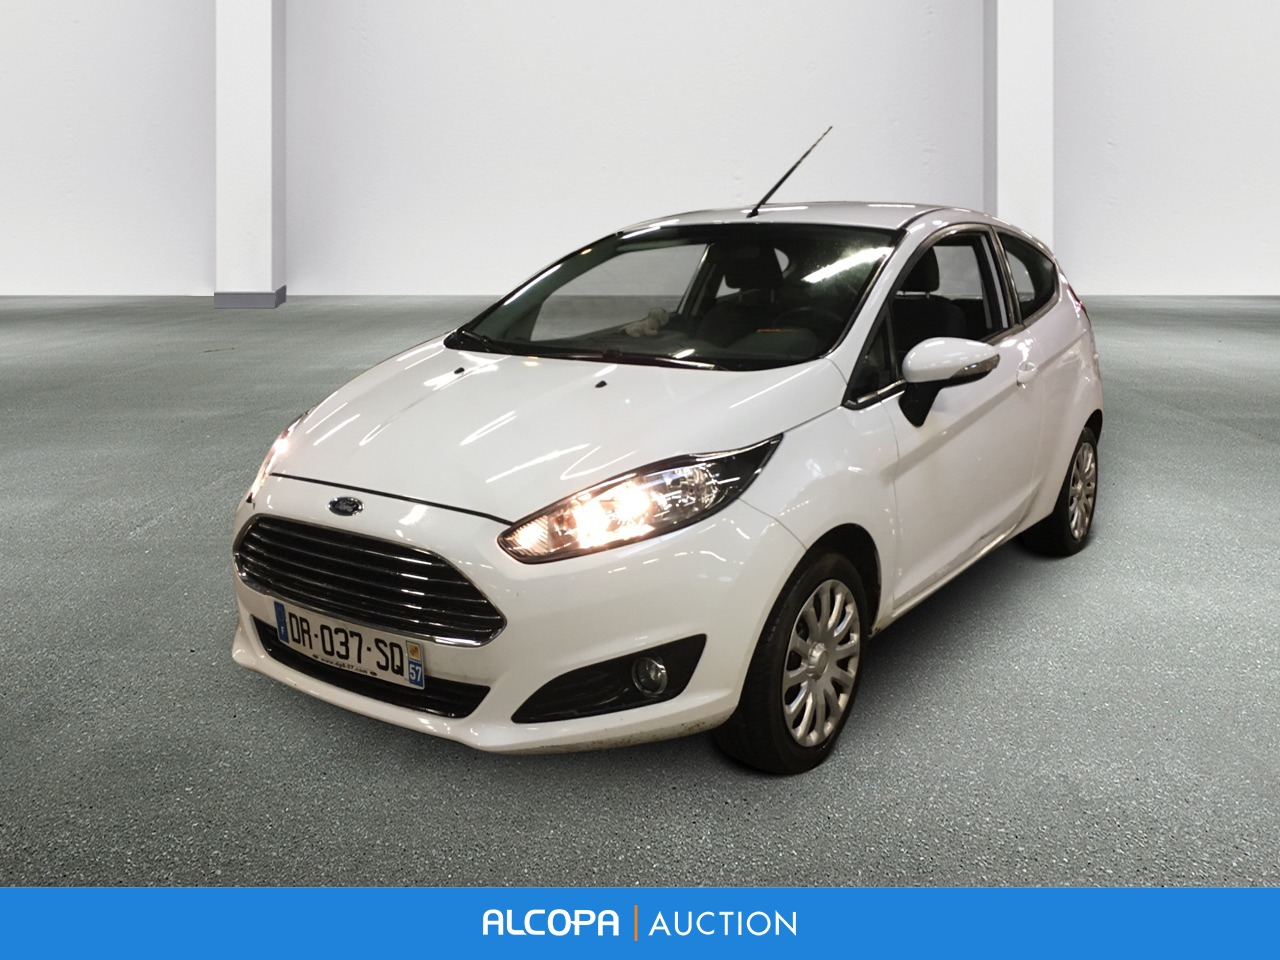 ford fiesta 1 0 ecoboost 100 s s edition alcopa auction. Black Bedroom Furniture Sets. Home Design Ideas